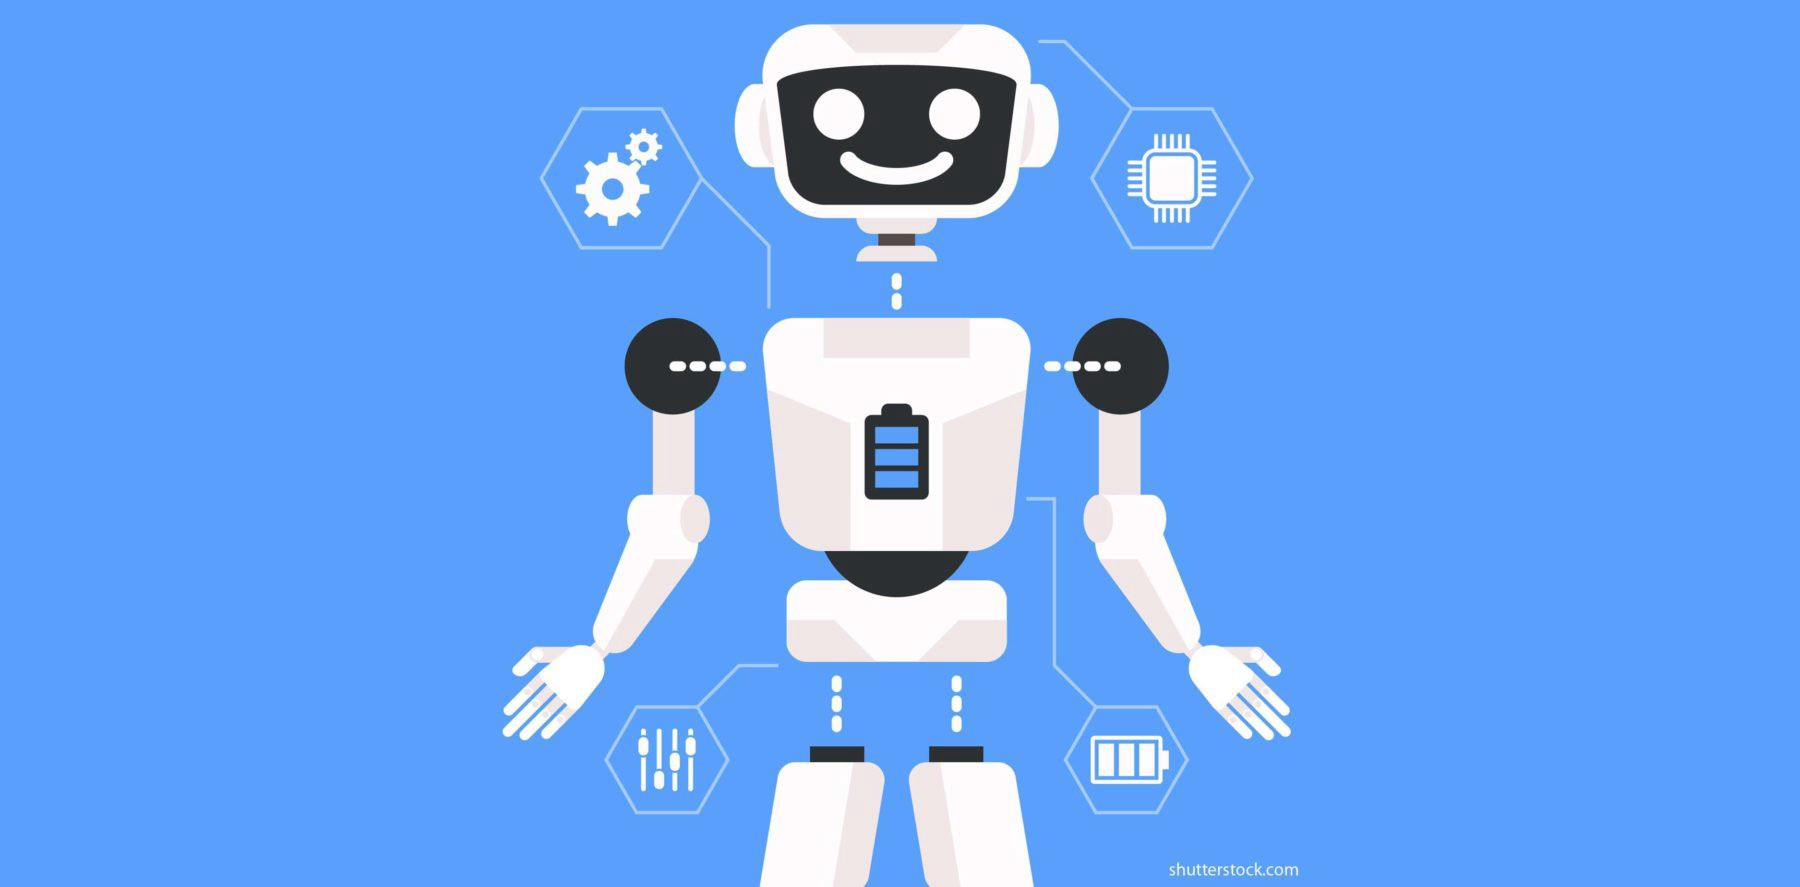 How you can build your first Chatbot using Rasa (in under 15